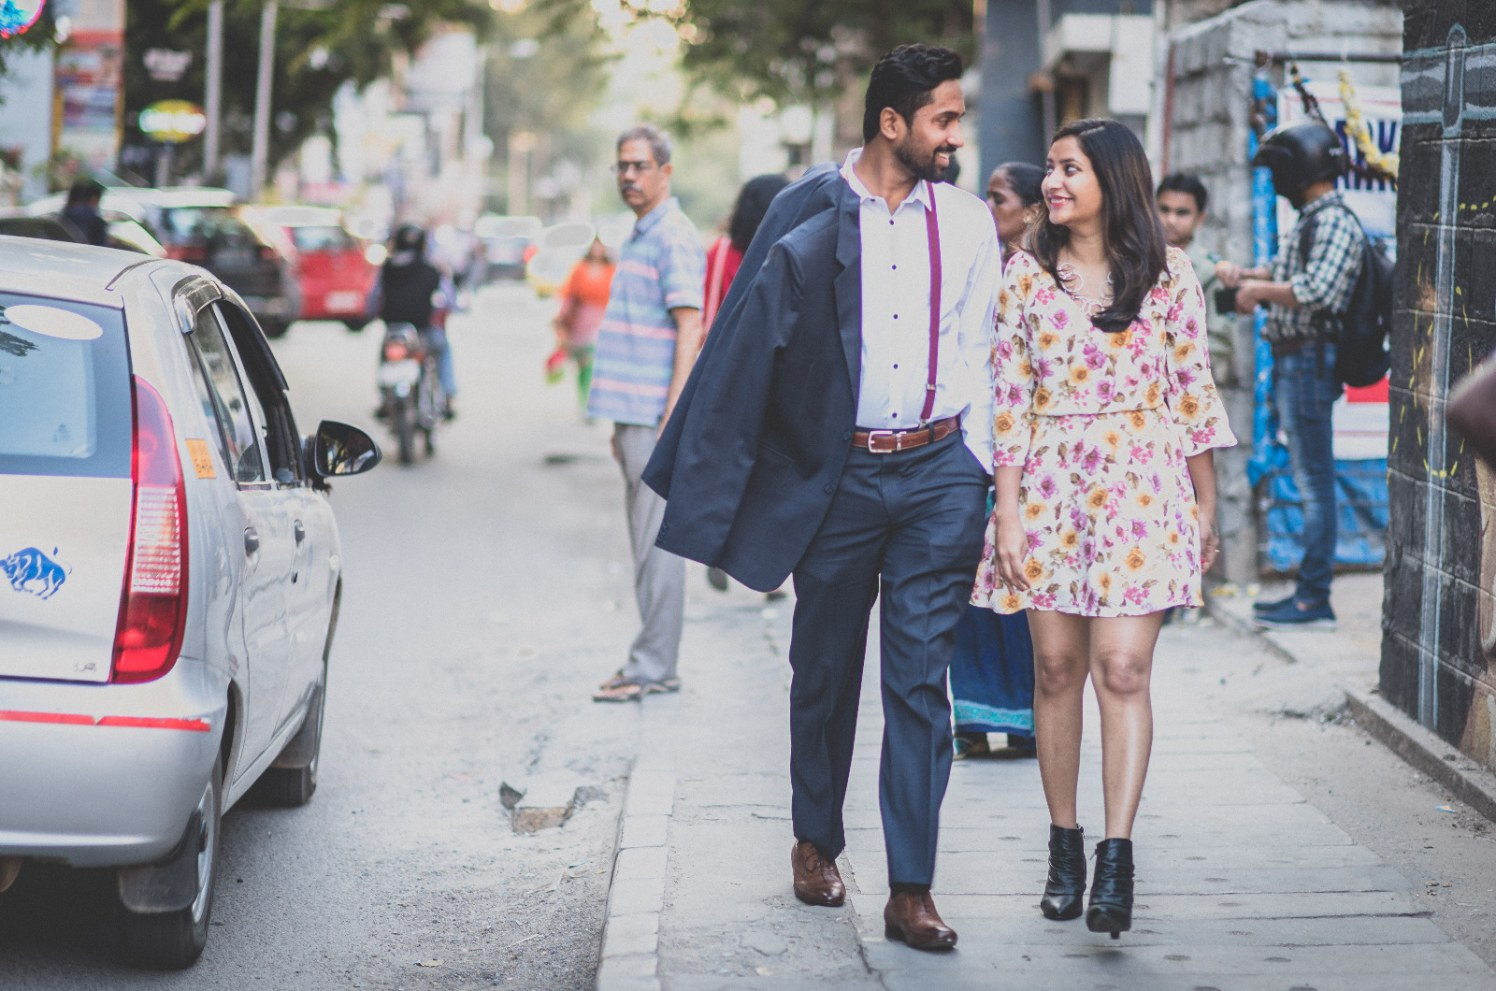 Vogue Street Pre Wedding Shoot by Dushyantha Kumar C Wedding-photography | Weddings Photos & Ideas